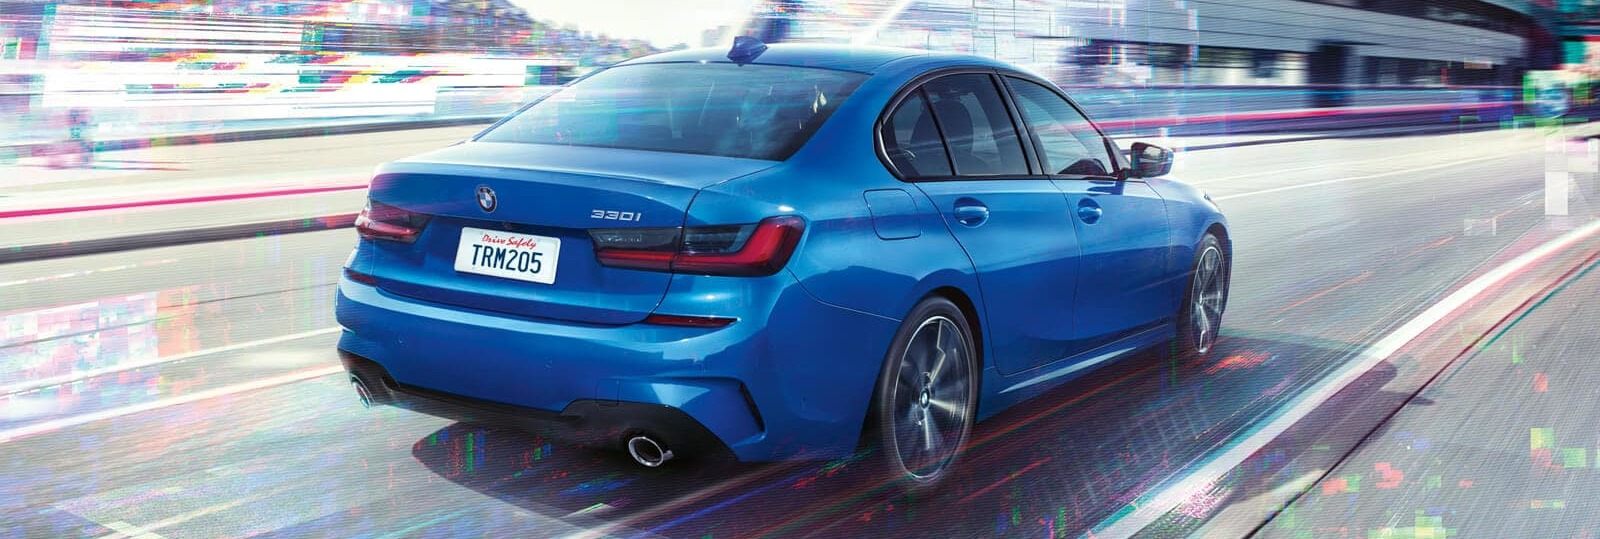 Pre-Owned BMW Vehicles for Sale near Dallas, TX